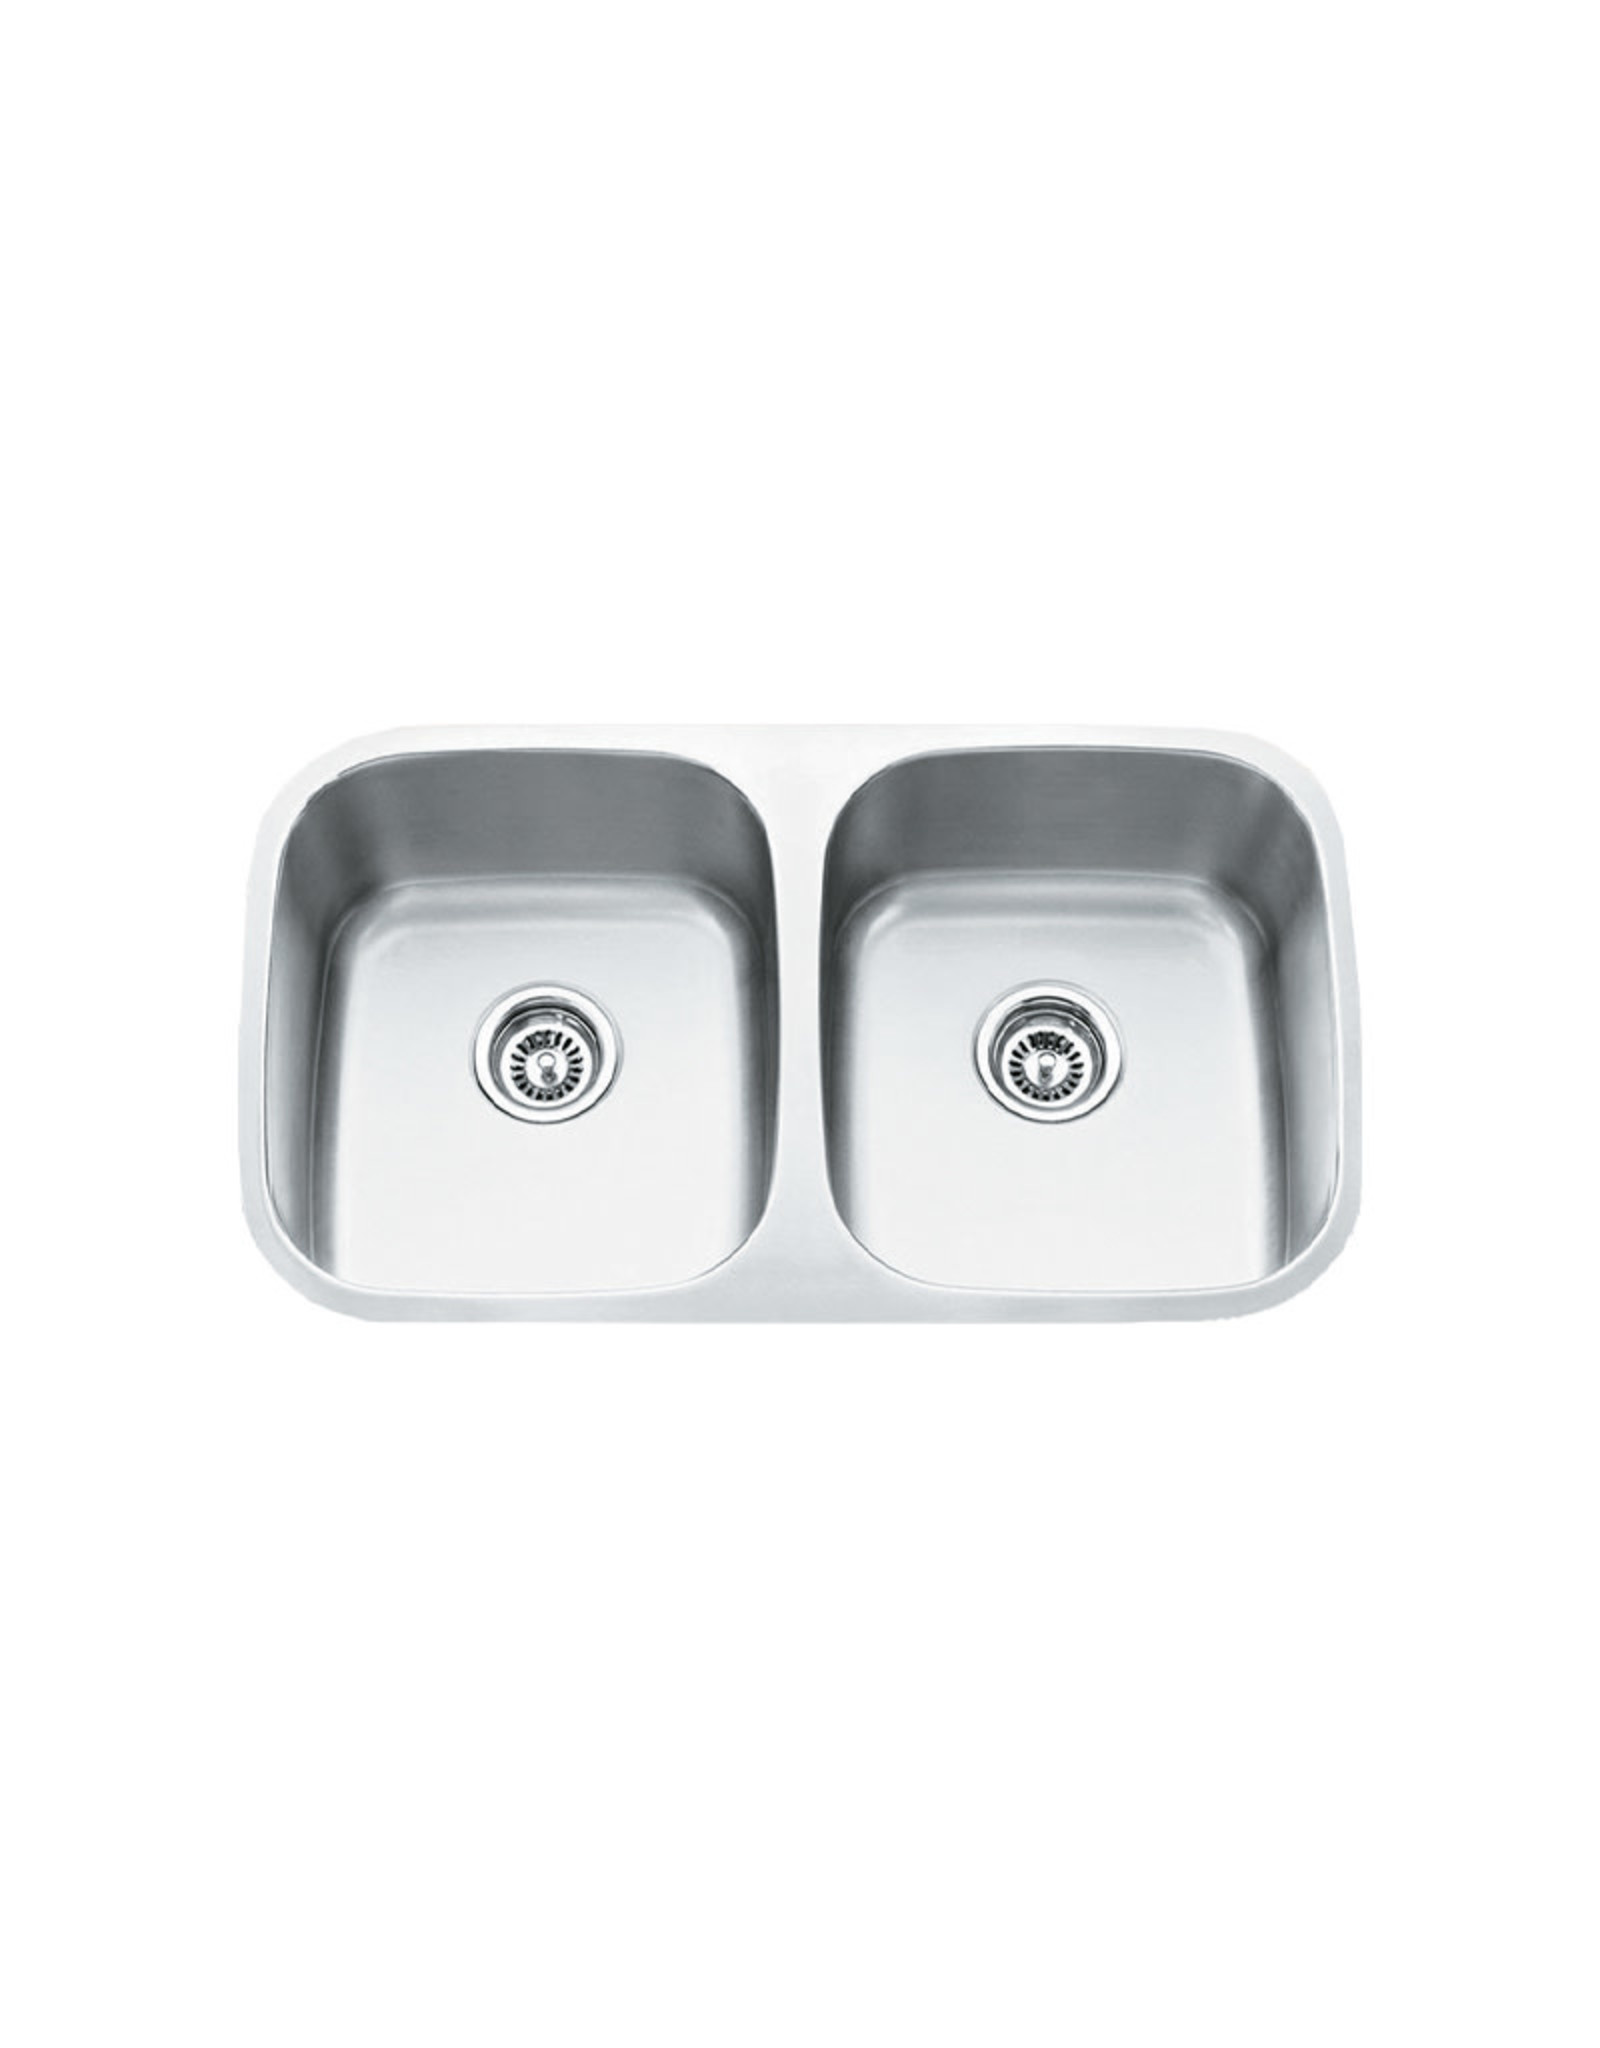 "Vogt Vogt Modena Undermount Kitchen Sink Double Bowl (50/50) 32 ¼"" x 18 ½"" x 9"""